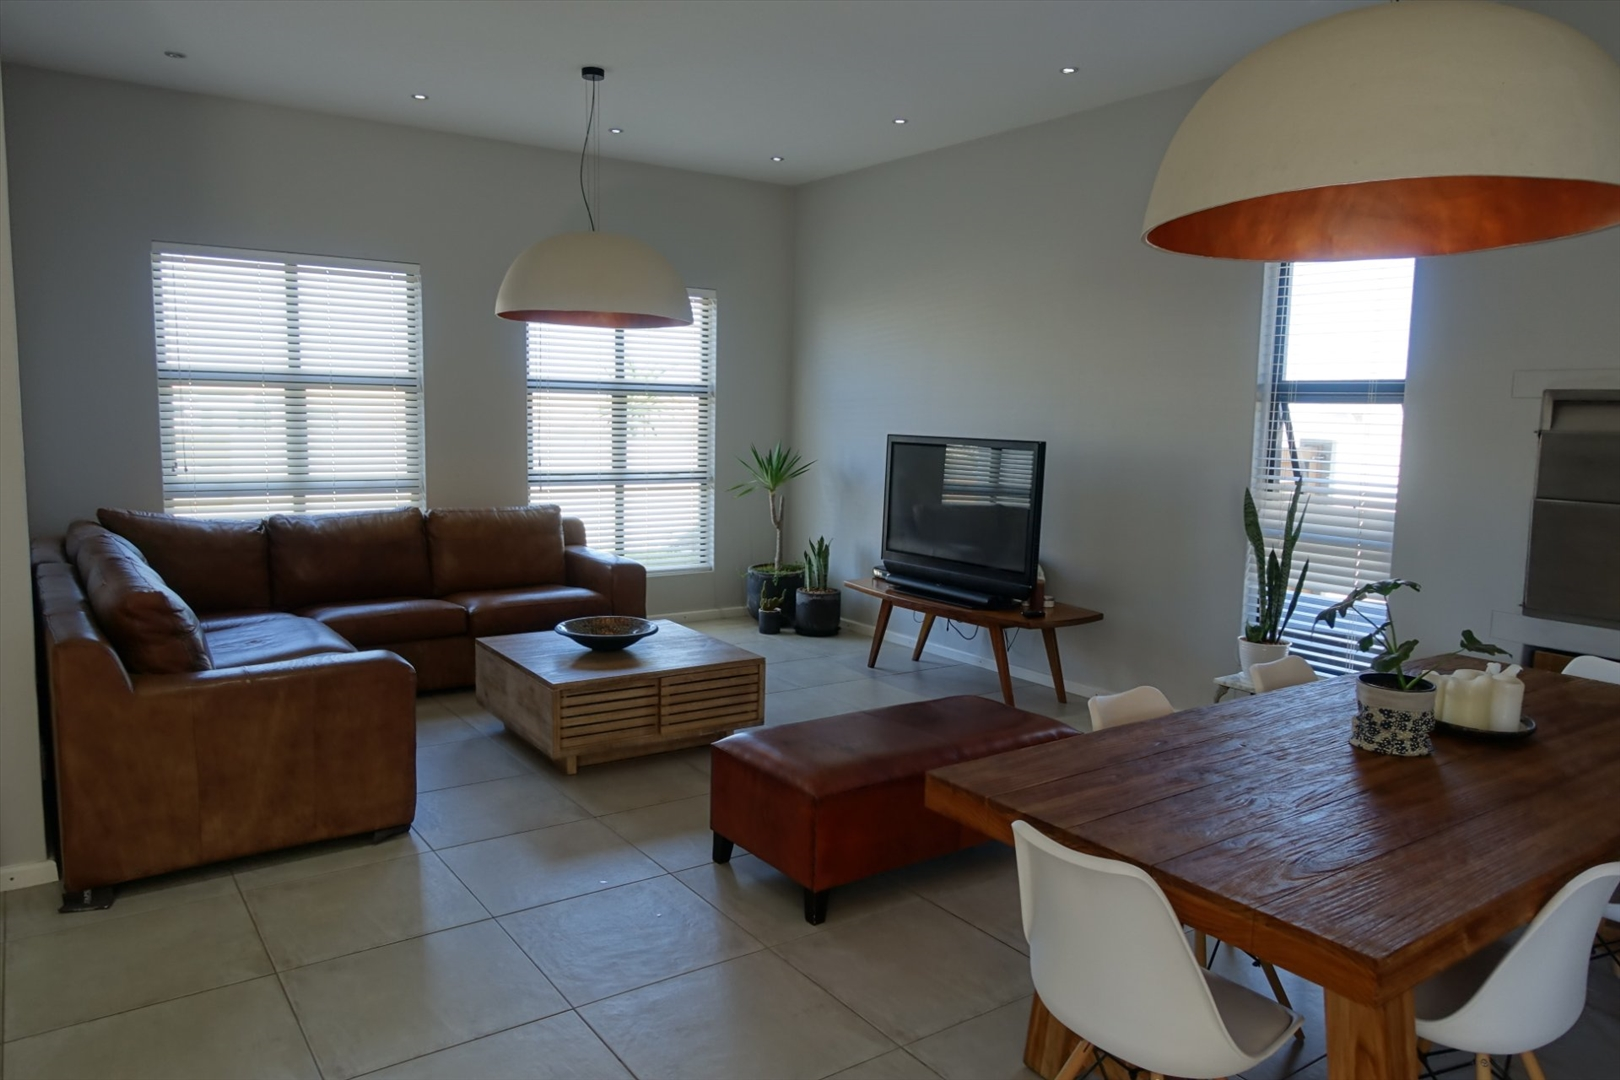 Living room/dining room area